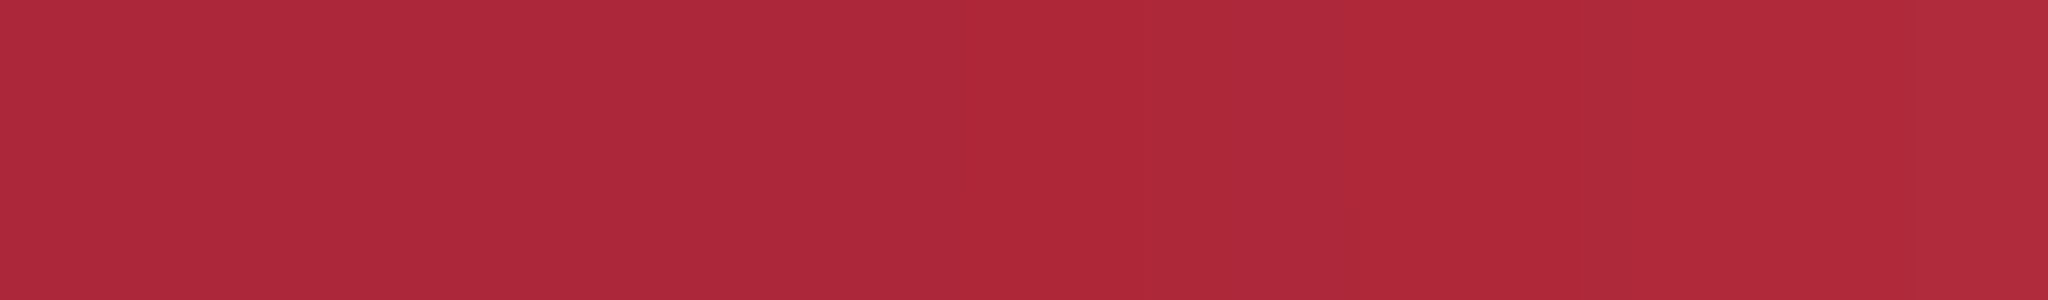 HSE 133120 ABS Edge with Acrylic Foil Red Smooth Gloss 90° Hot-Air